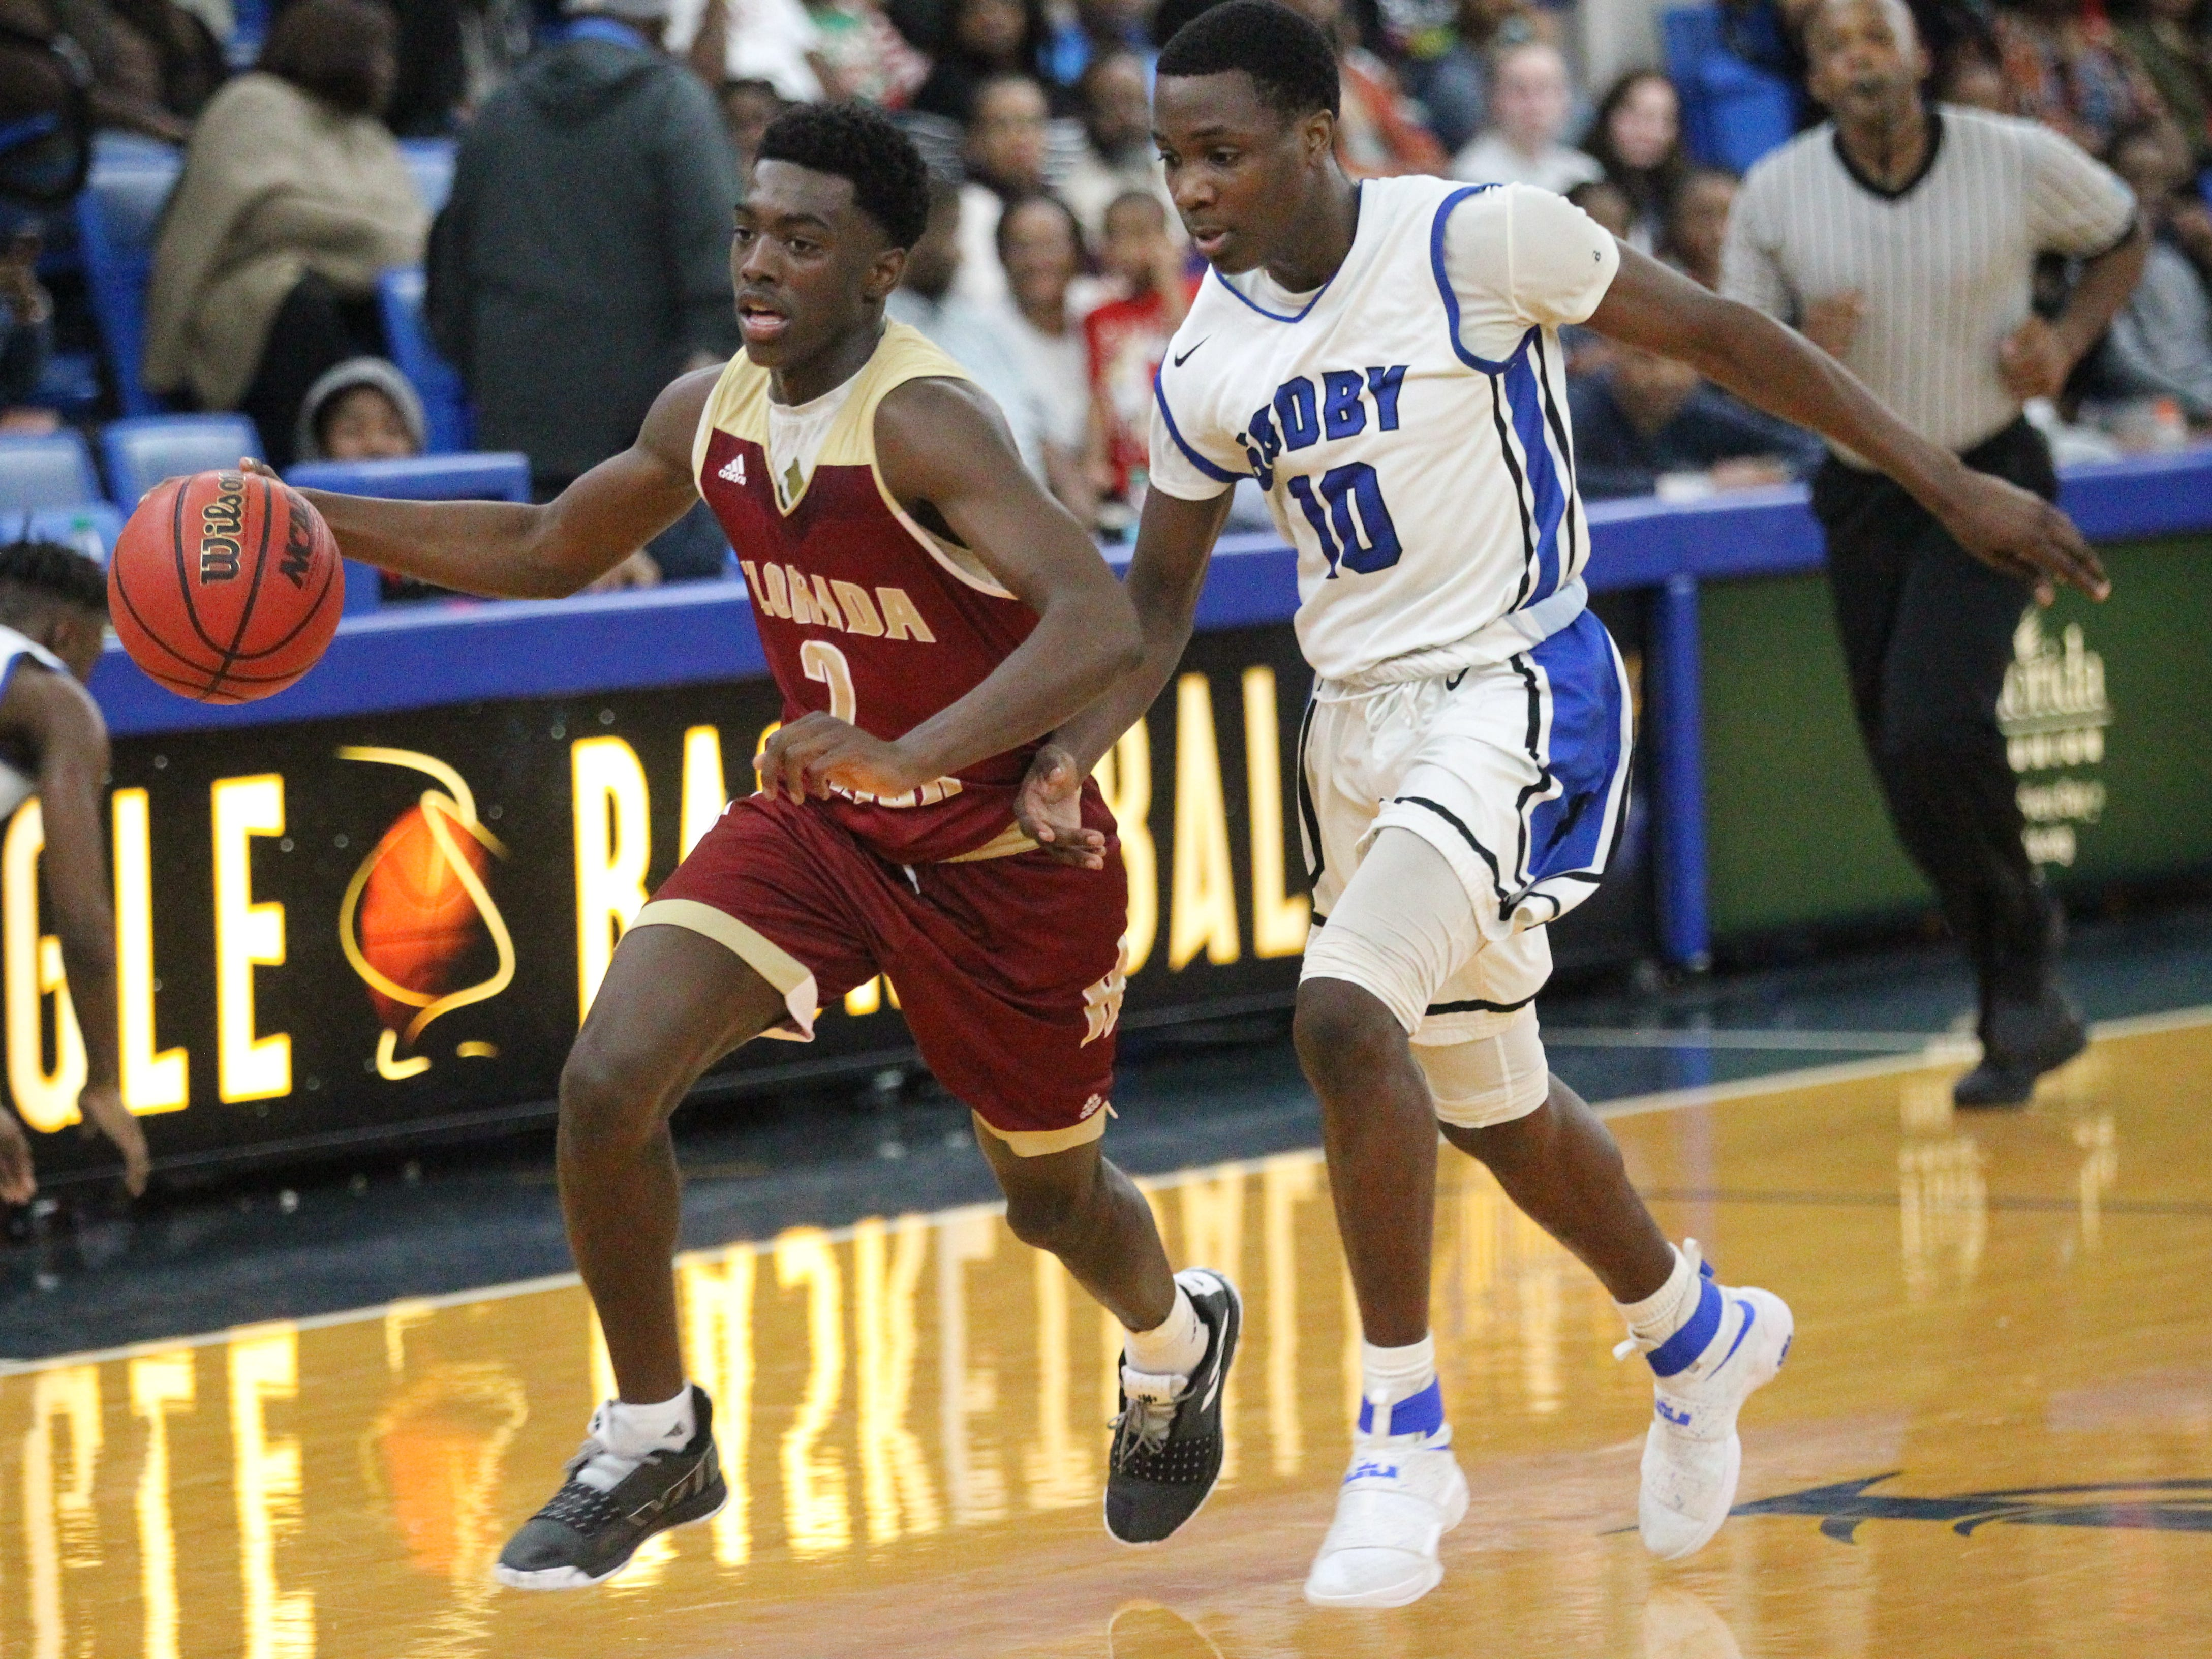 Florida High's Terrion Arnold drives past Godby's Dahron Thomas during the 2018 Capital City Holiday Classic at TCC.